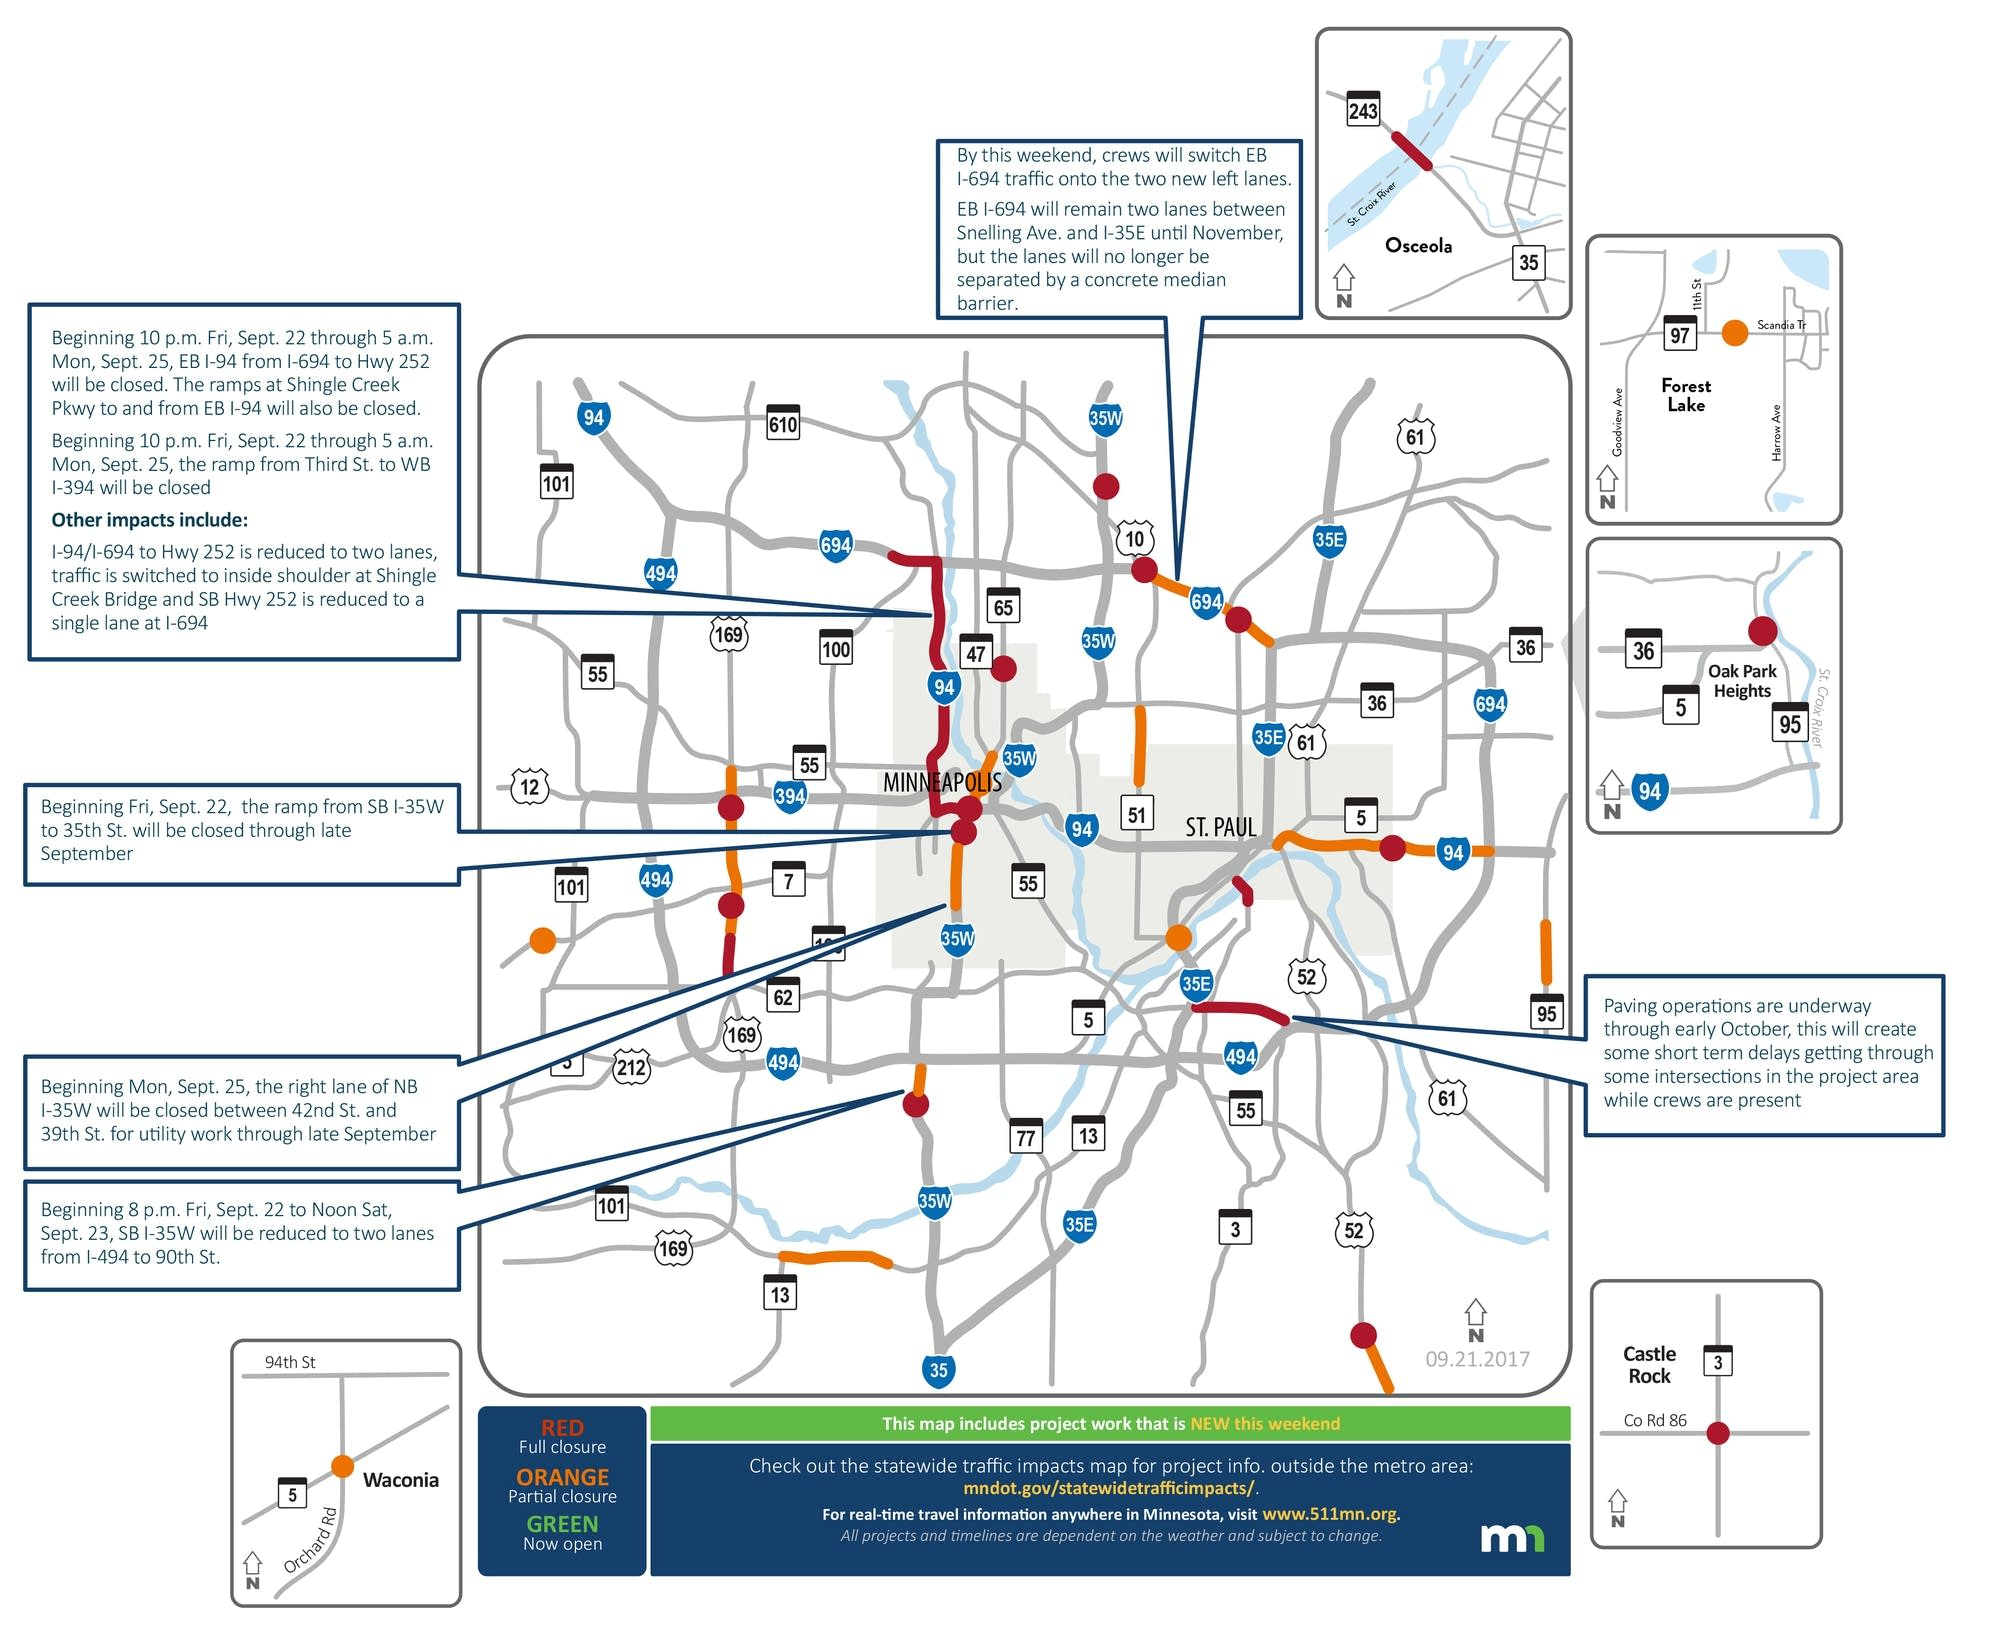 A look at road closures and other traffic woes this weekend.